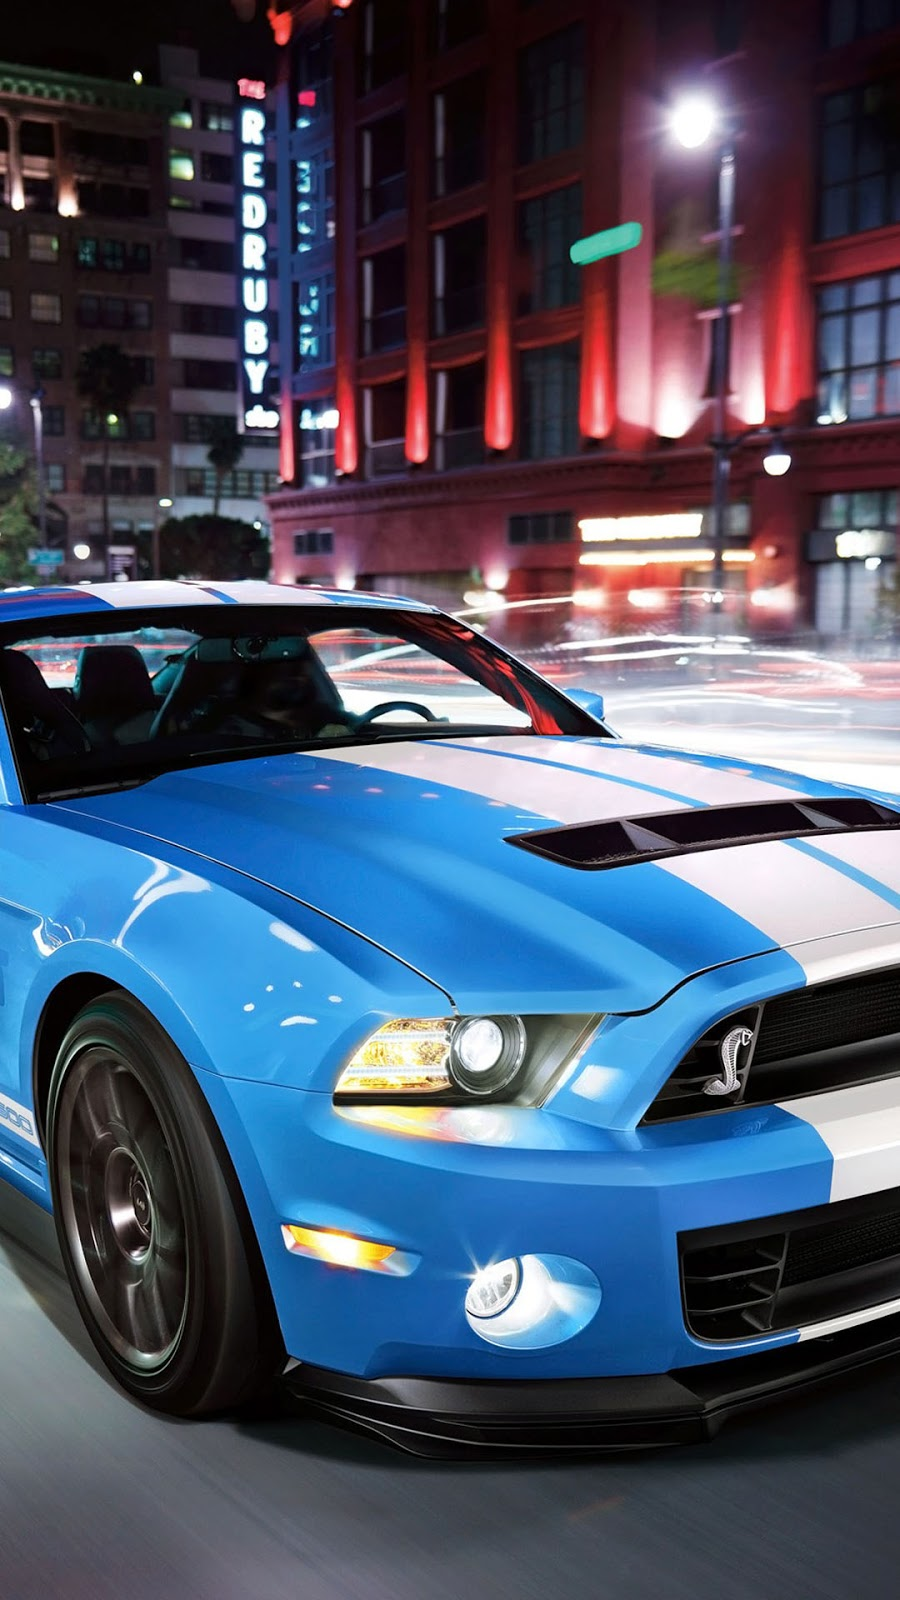 Shelby Mobil Sport Biru Wallpaper Android